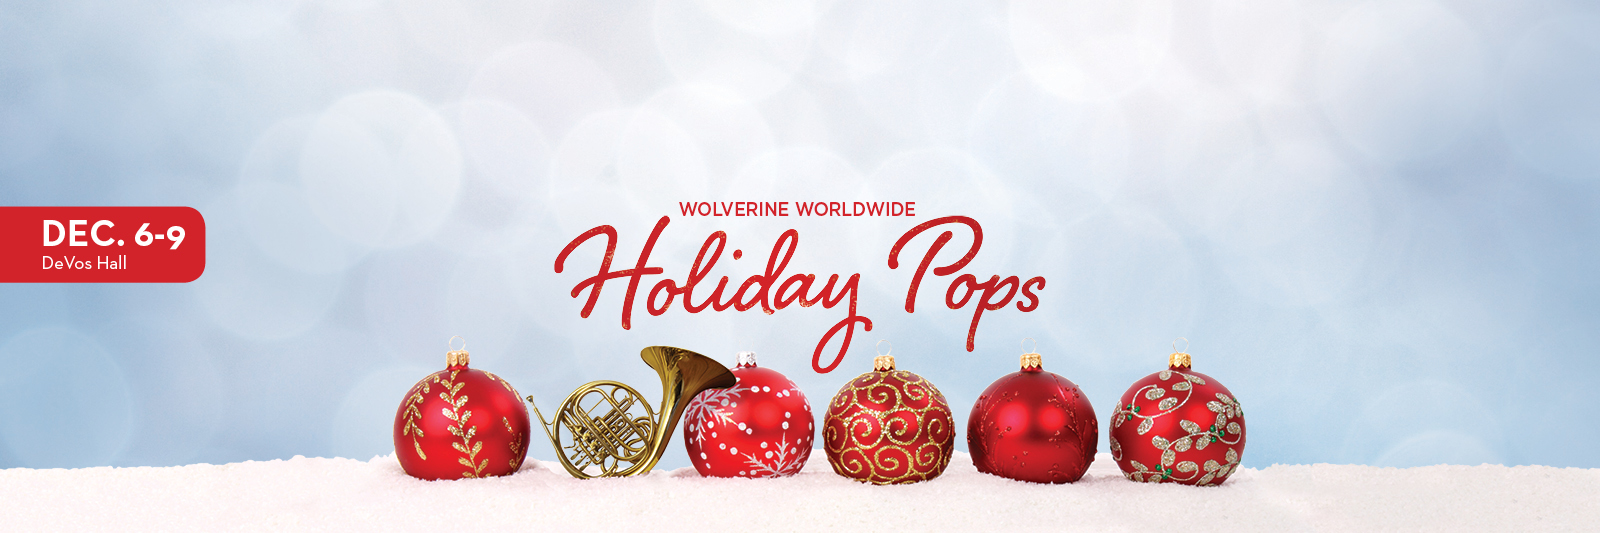 Wolverine Worldwide Holiday Pops